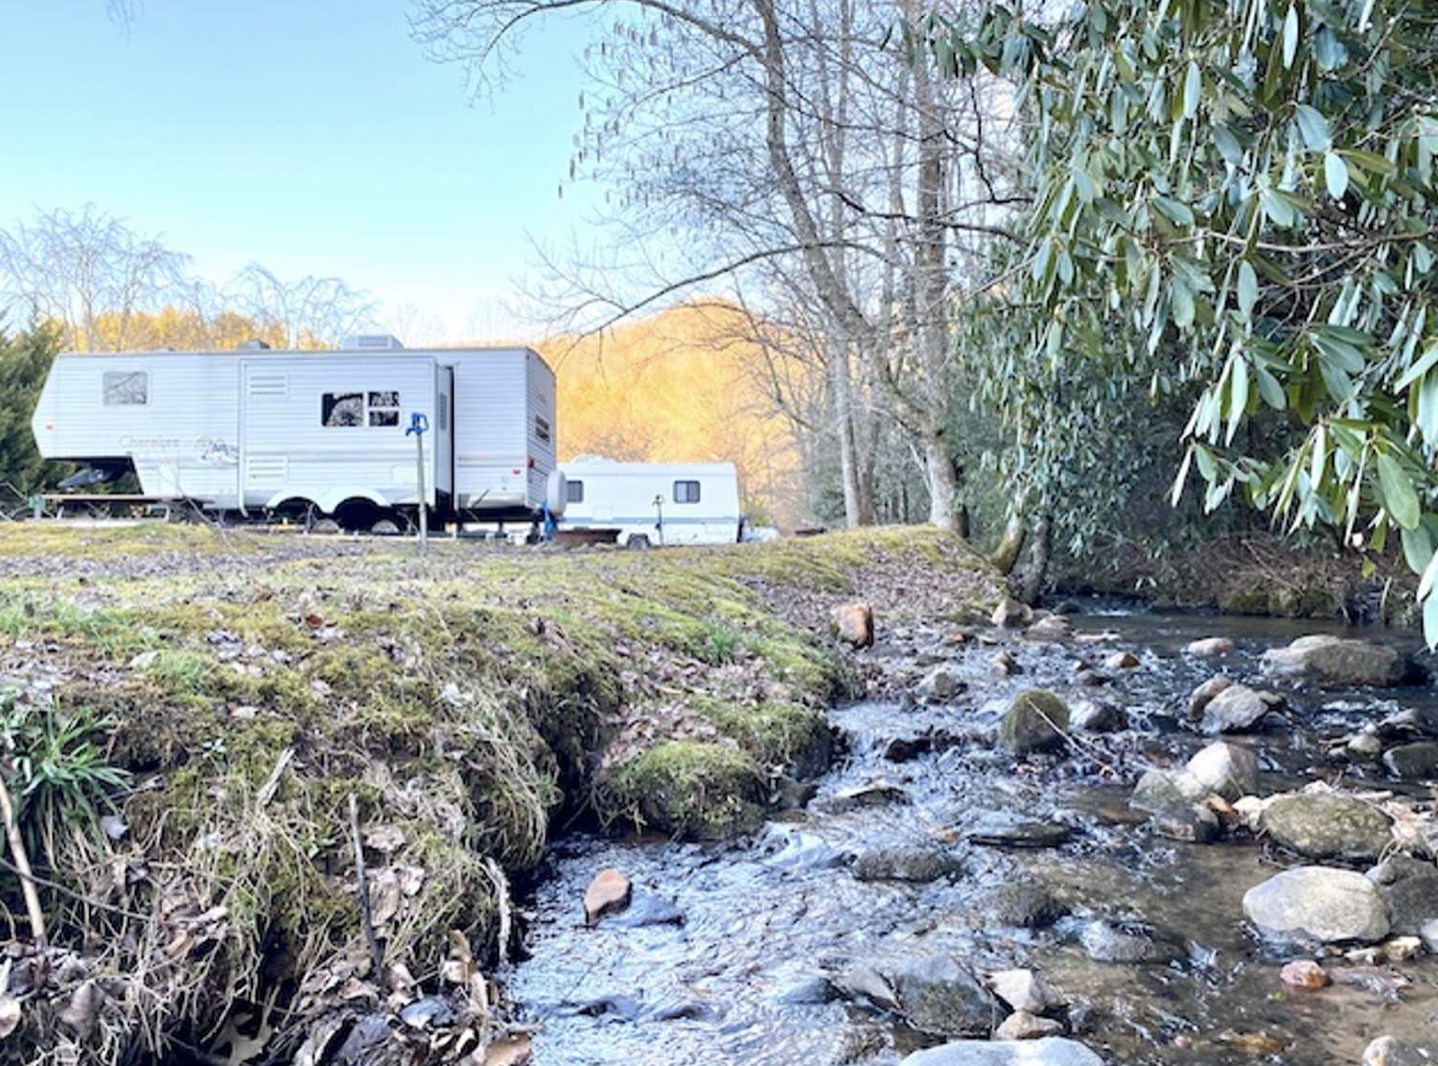 RV parked next to river at J&Js getaway campground